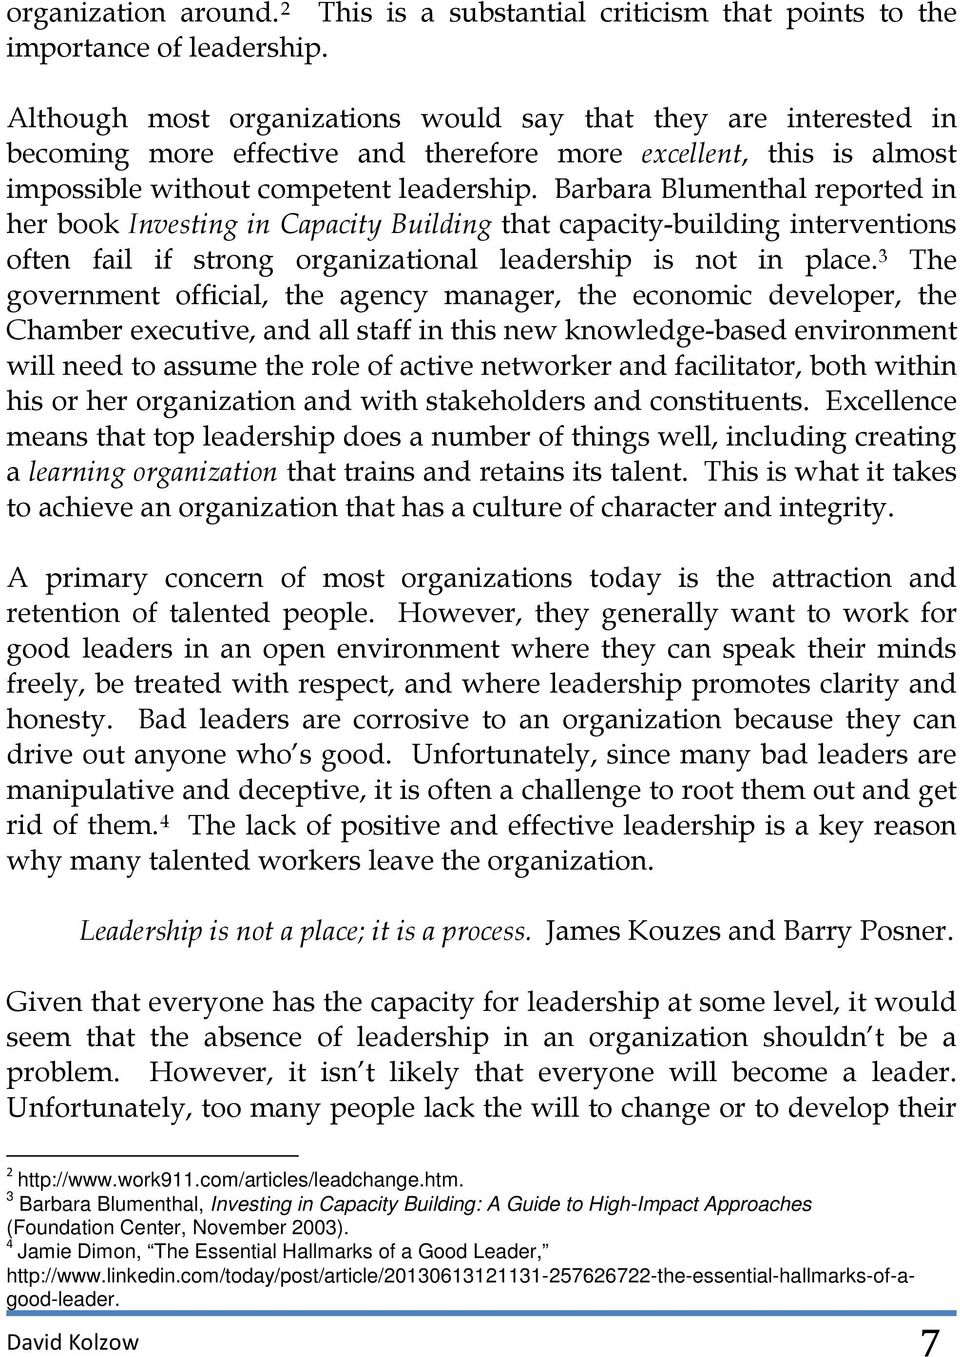 Barbara Blumenthal reported in her book Investing in Capacity Building that capacity-building interventions often fail if strong organizational leadership is not in place.